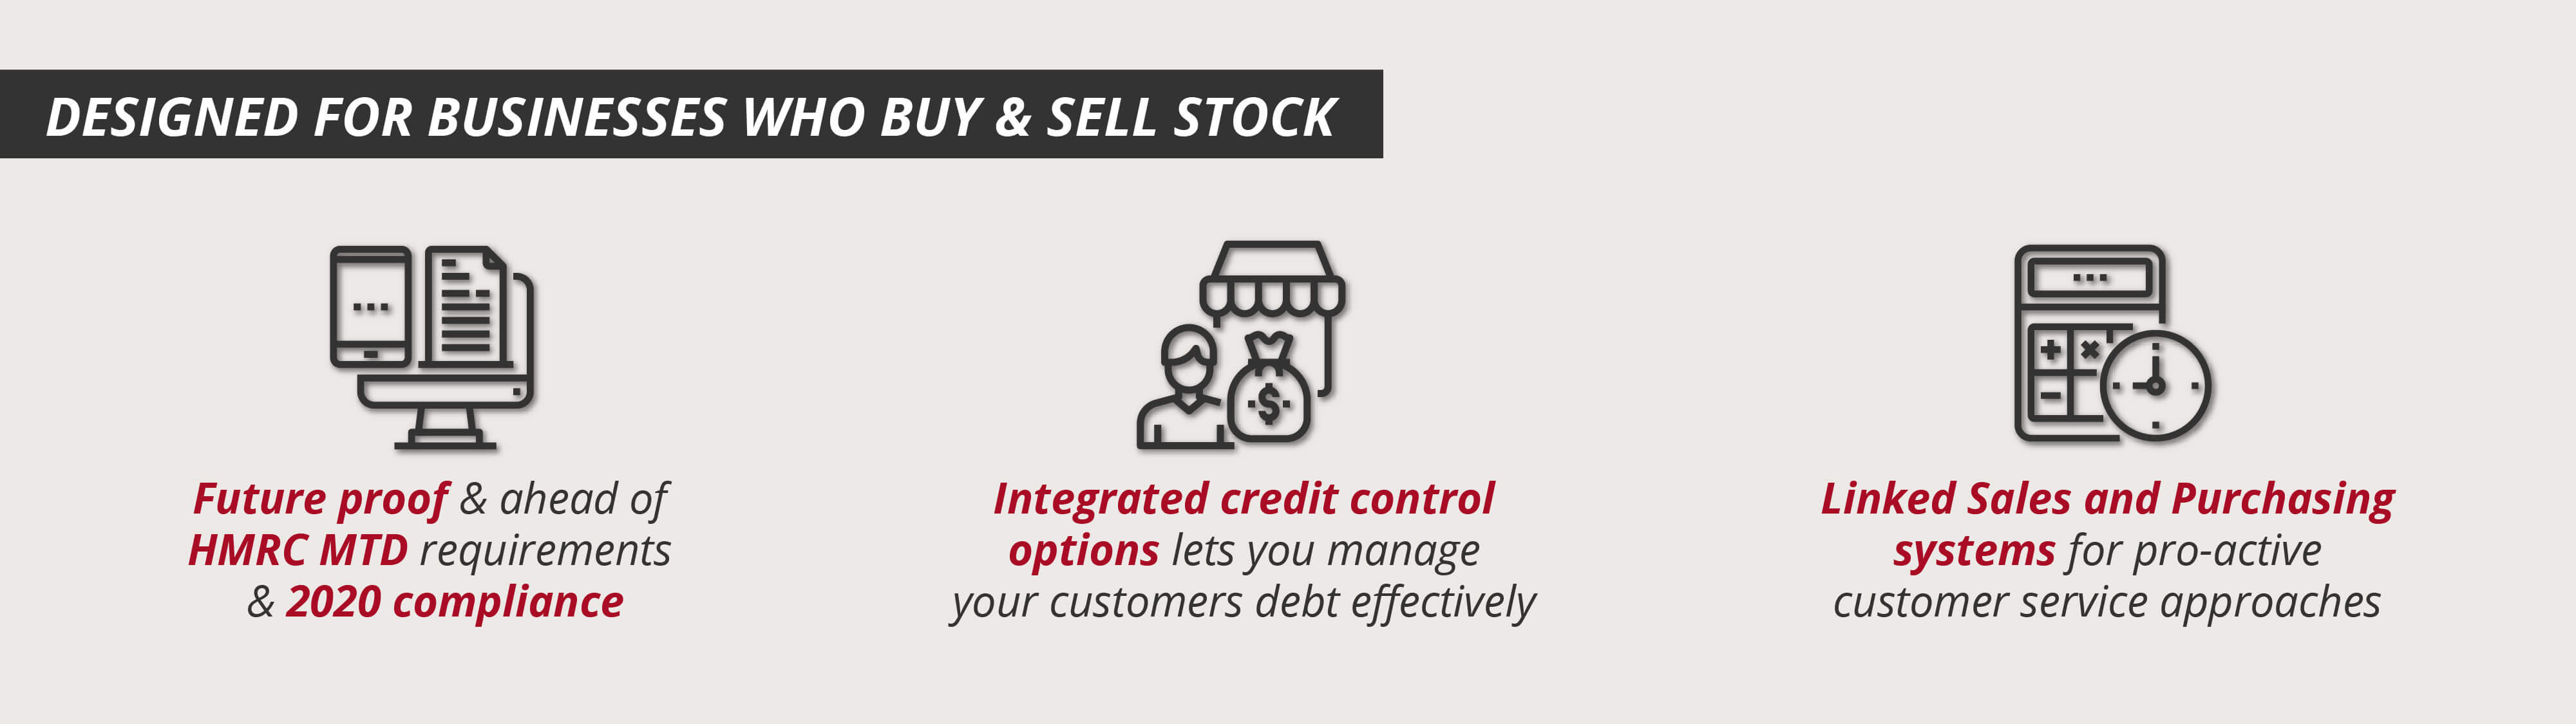 Designed for Businesses Who Buy and Sell Stock